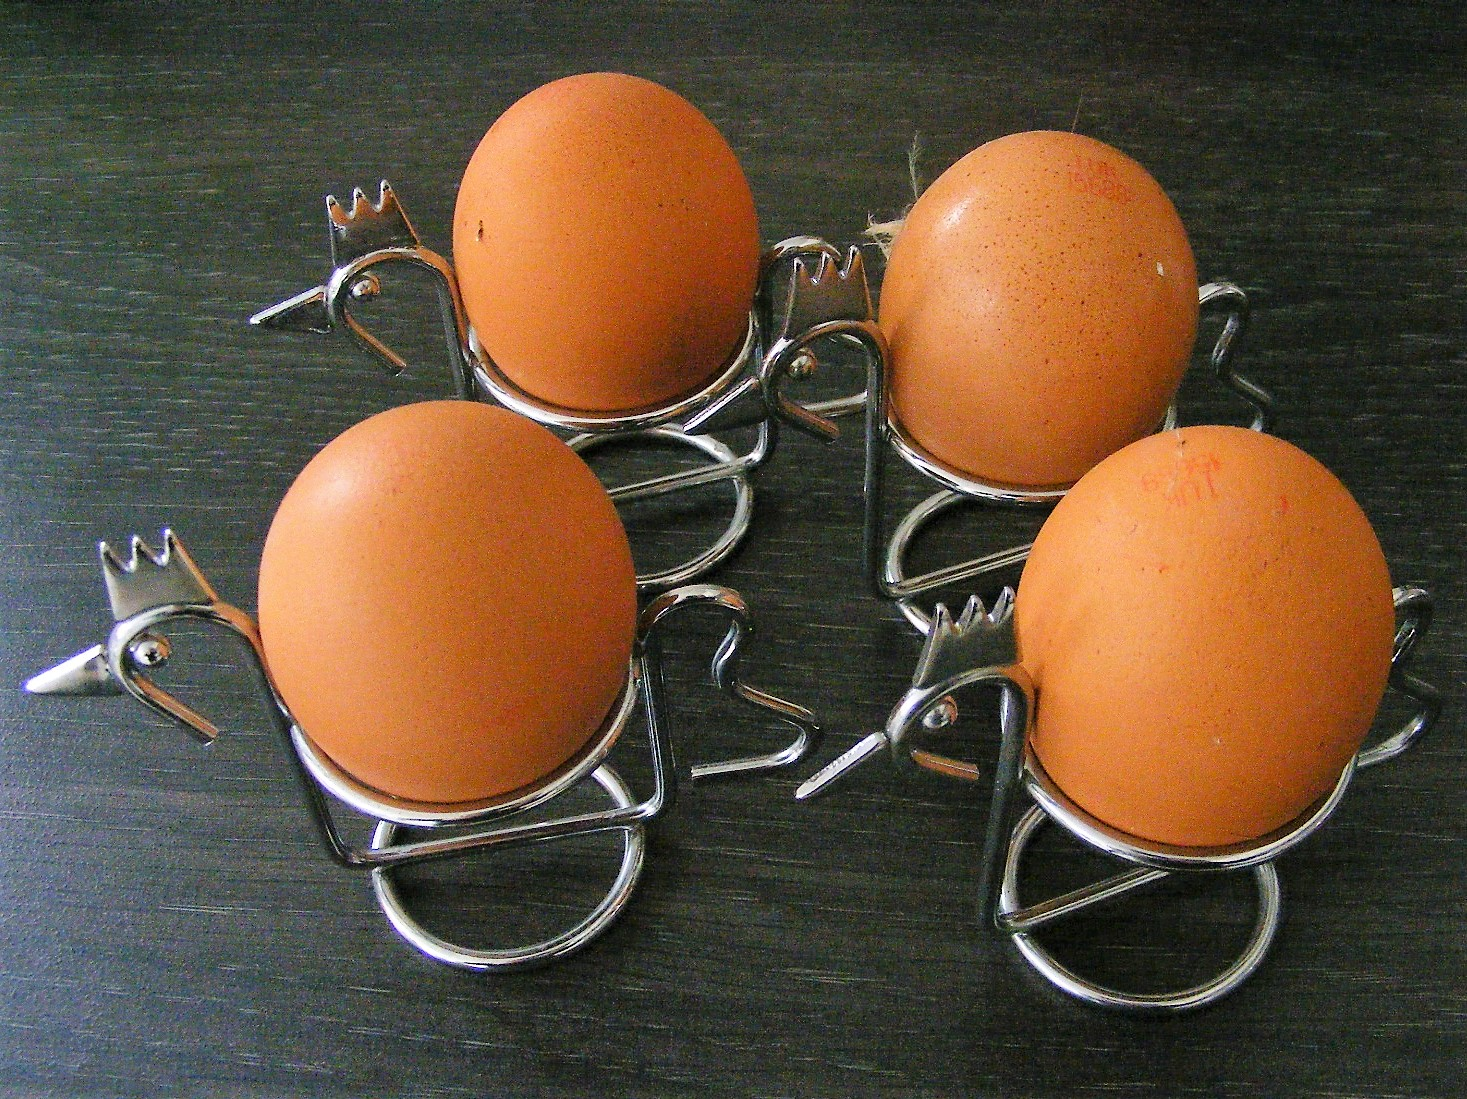 Vintage set of 4 stylish chrome hen shaped egg cups